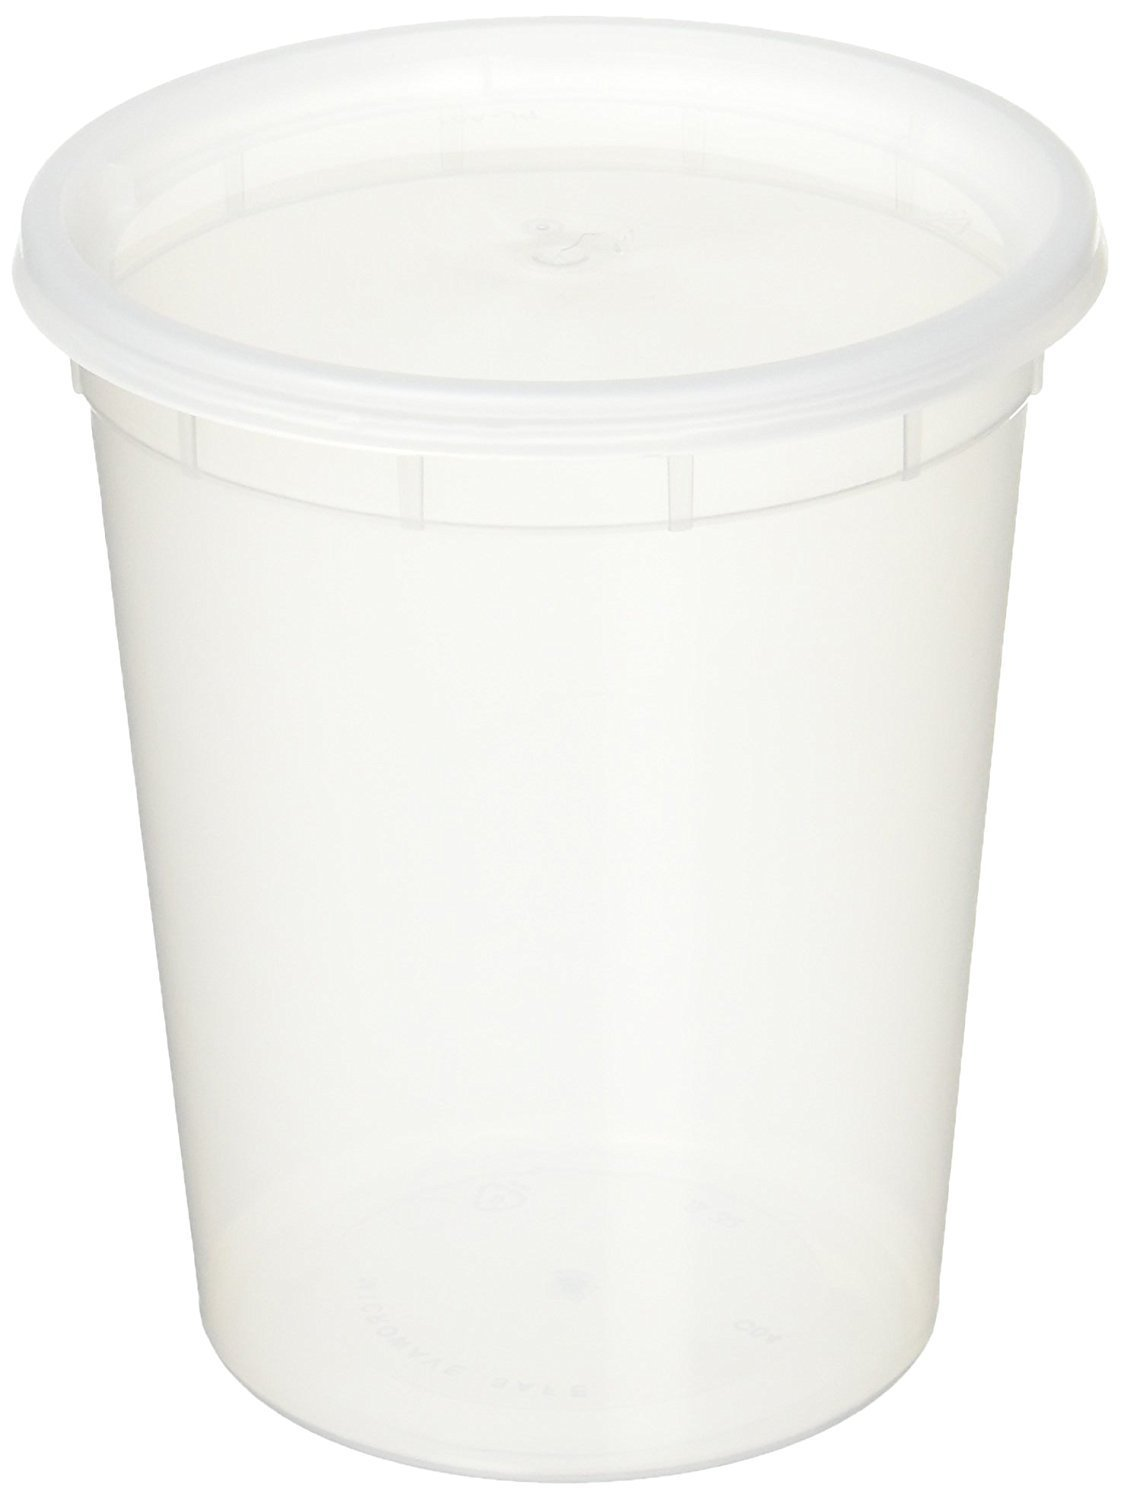 deli food storage containers with lids 16 ounce 50 count kitchen dining. Black Bedroom Furniture Sets. Home Design Ideas